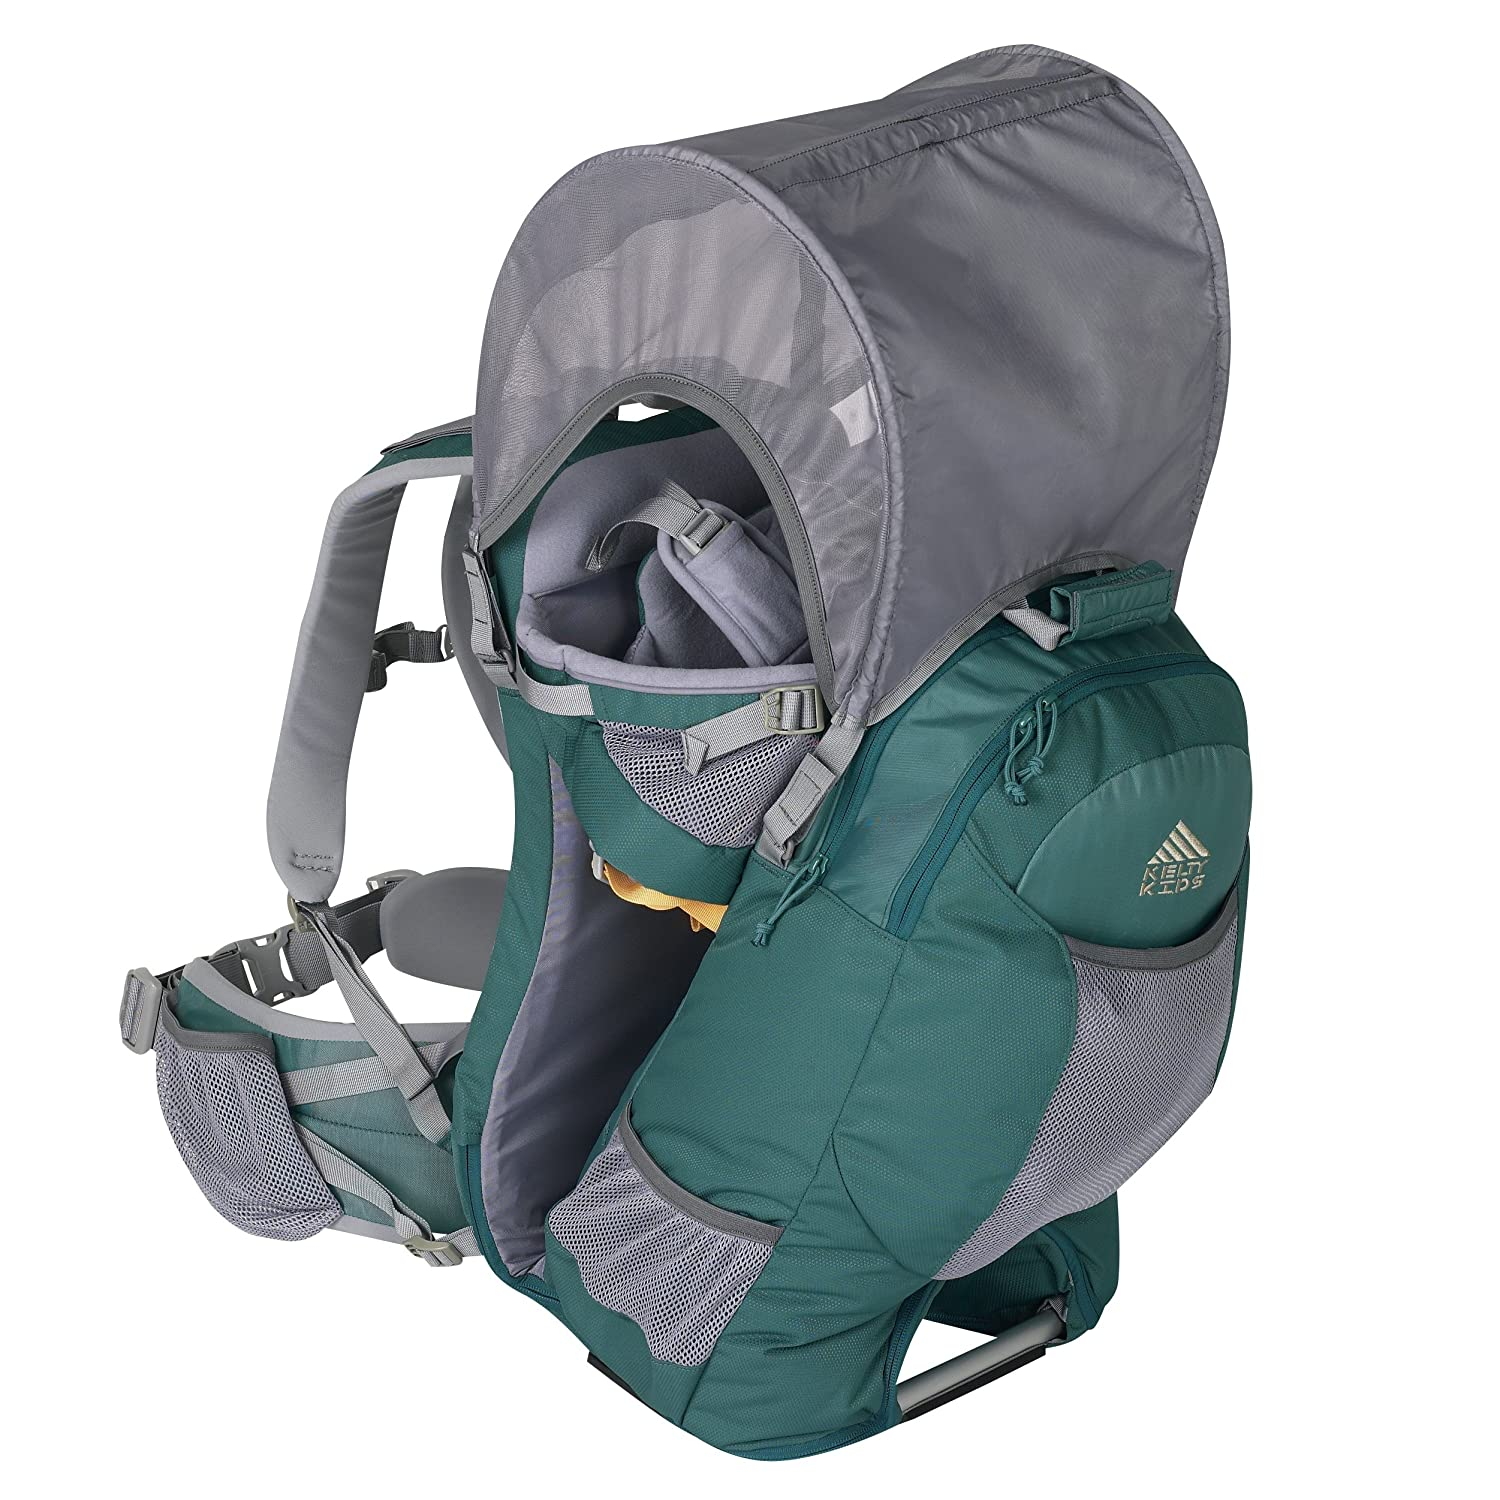 Amazon Kelty Transit 3 0 Child Carrier Sports & Outdoors